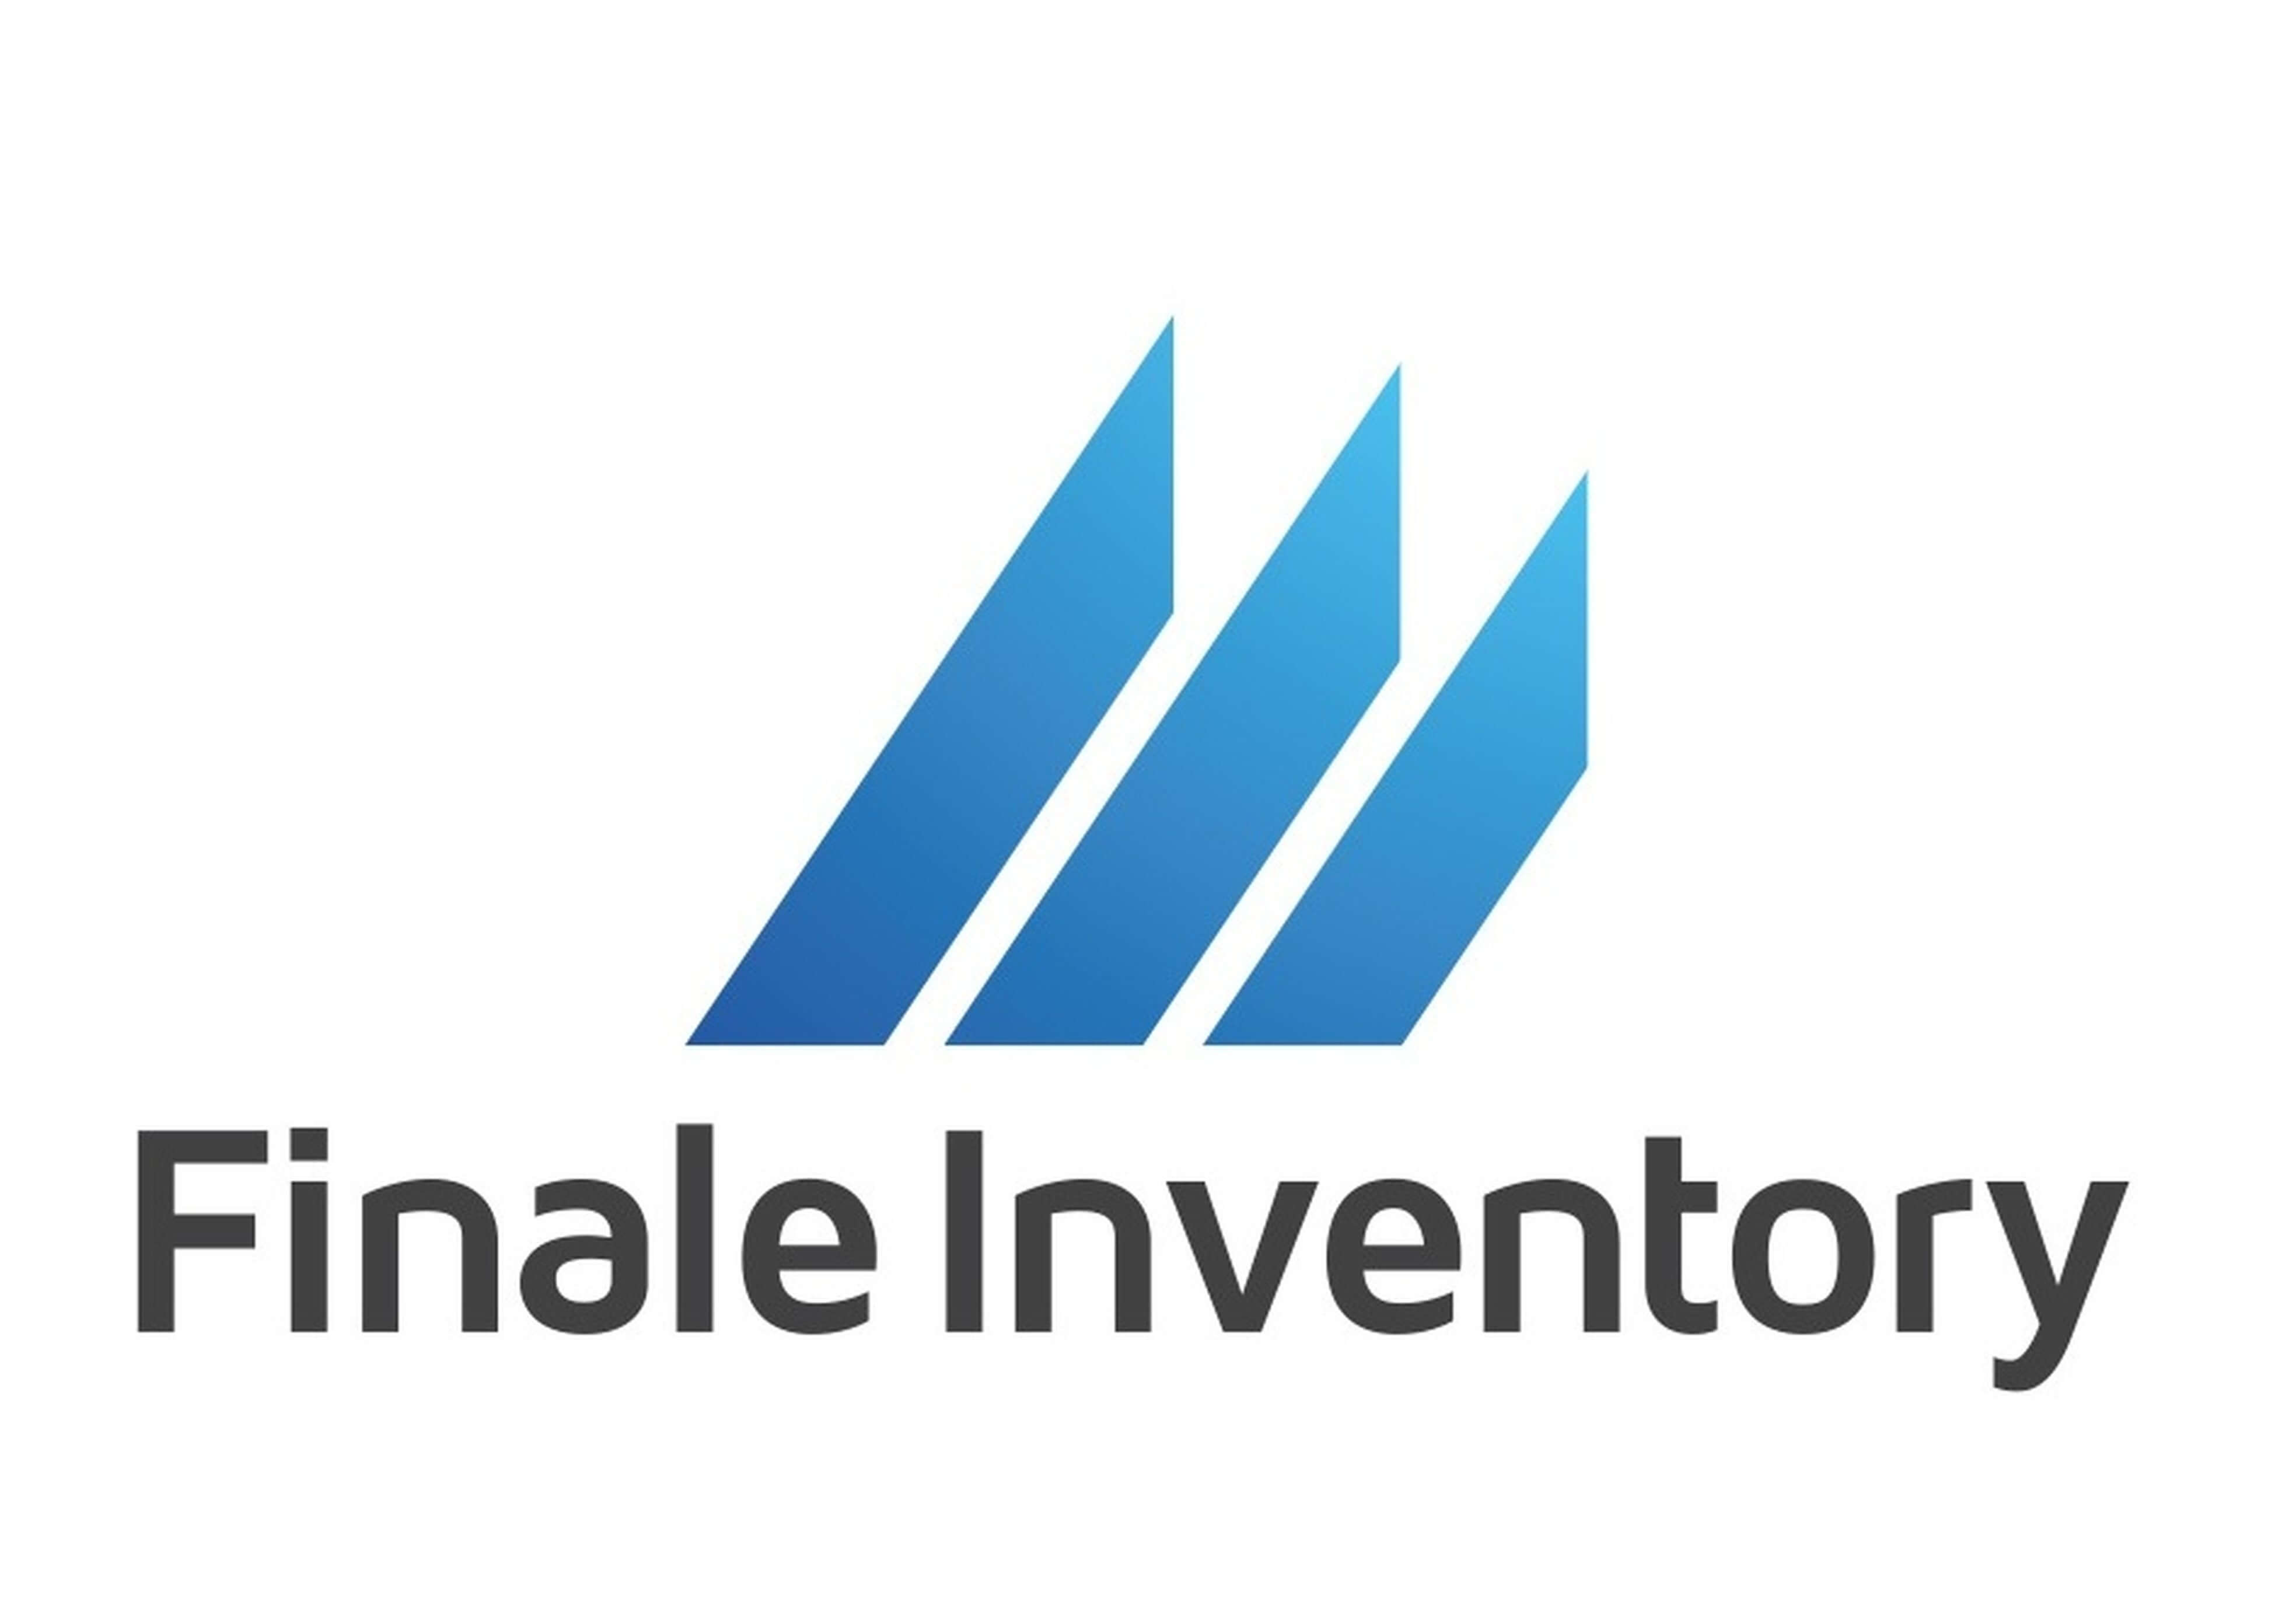 Finale Inventory | Inventory Management Software and Solutions